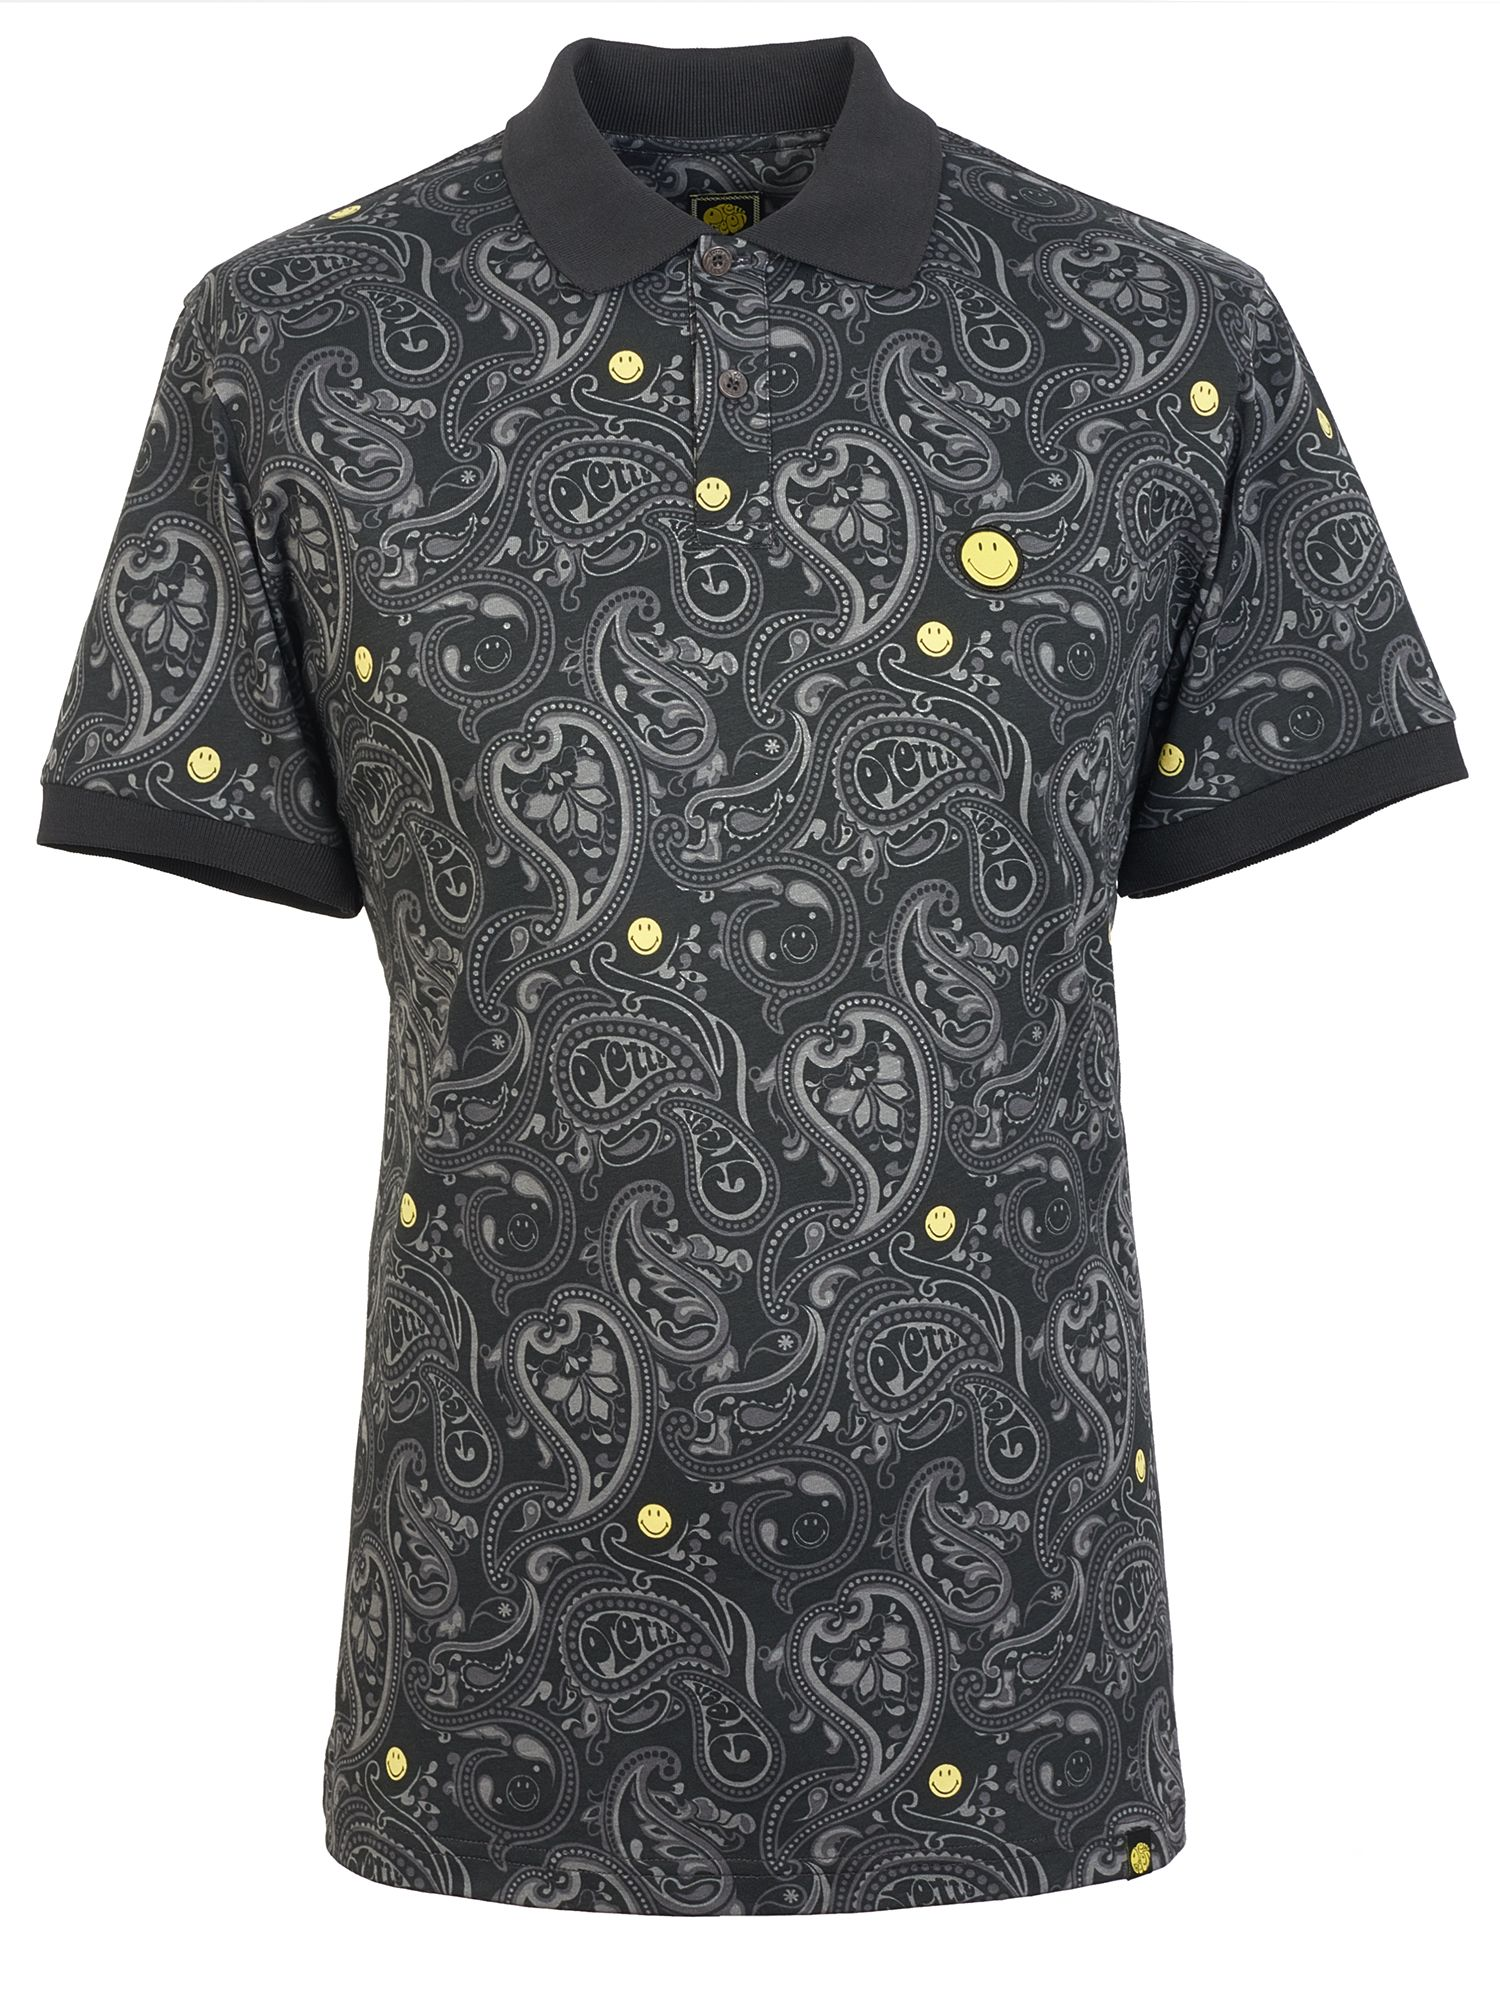 Men's Pretty Green Smiley Paisley Print Polo Shirt, Black